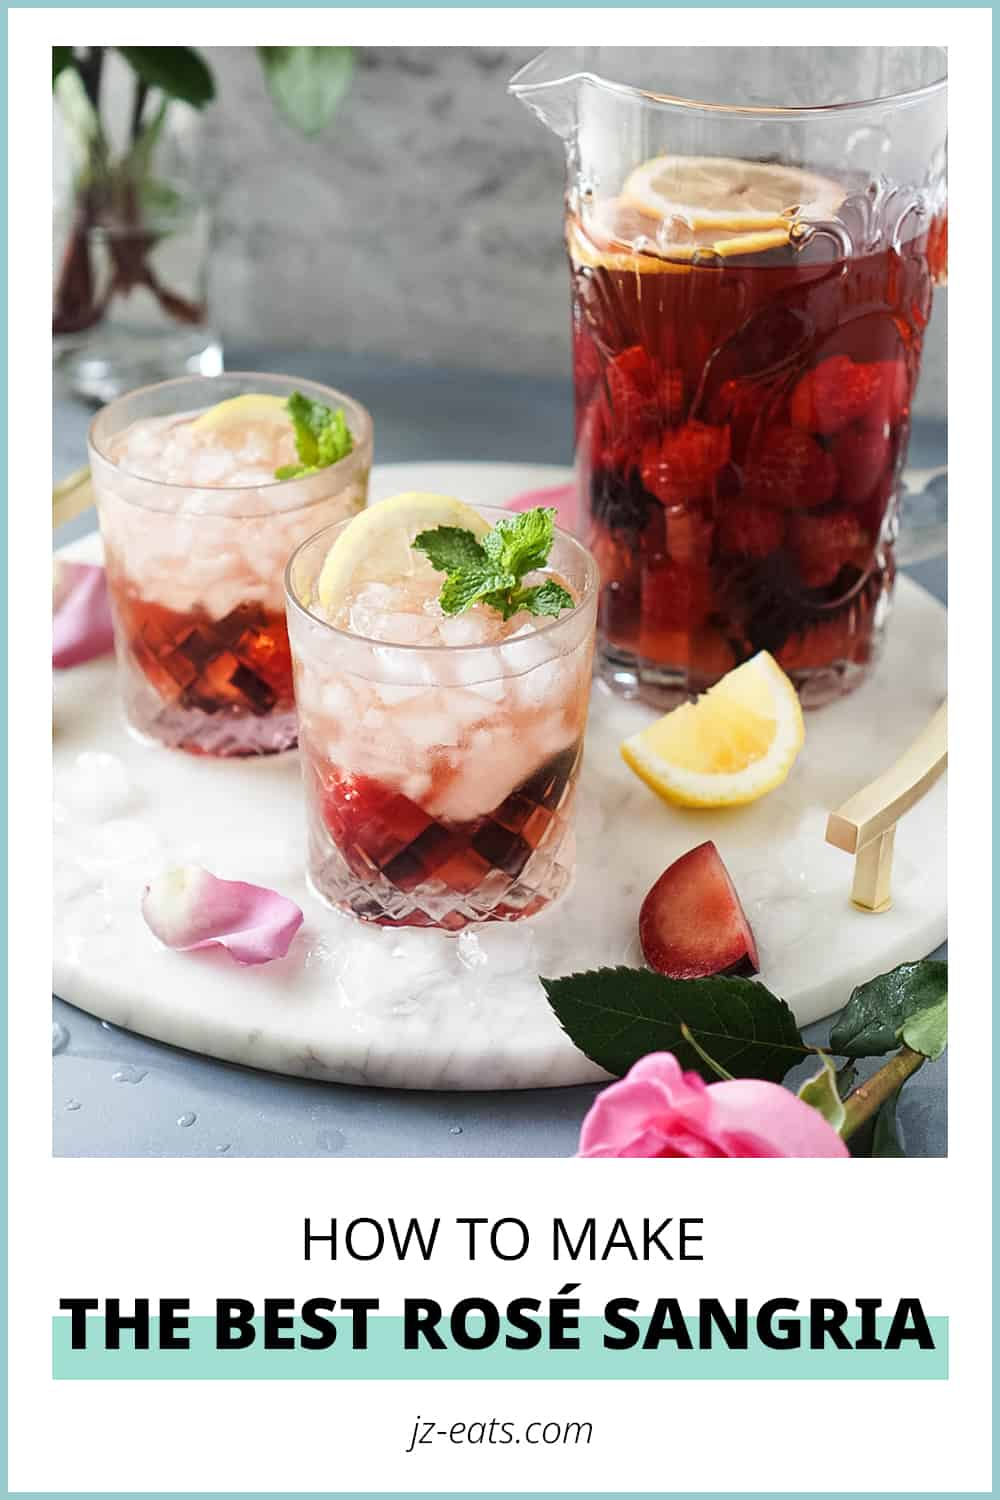 roseÌ sangria pinterest short pin